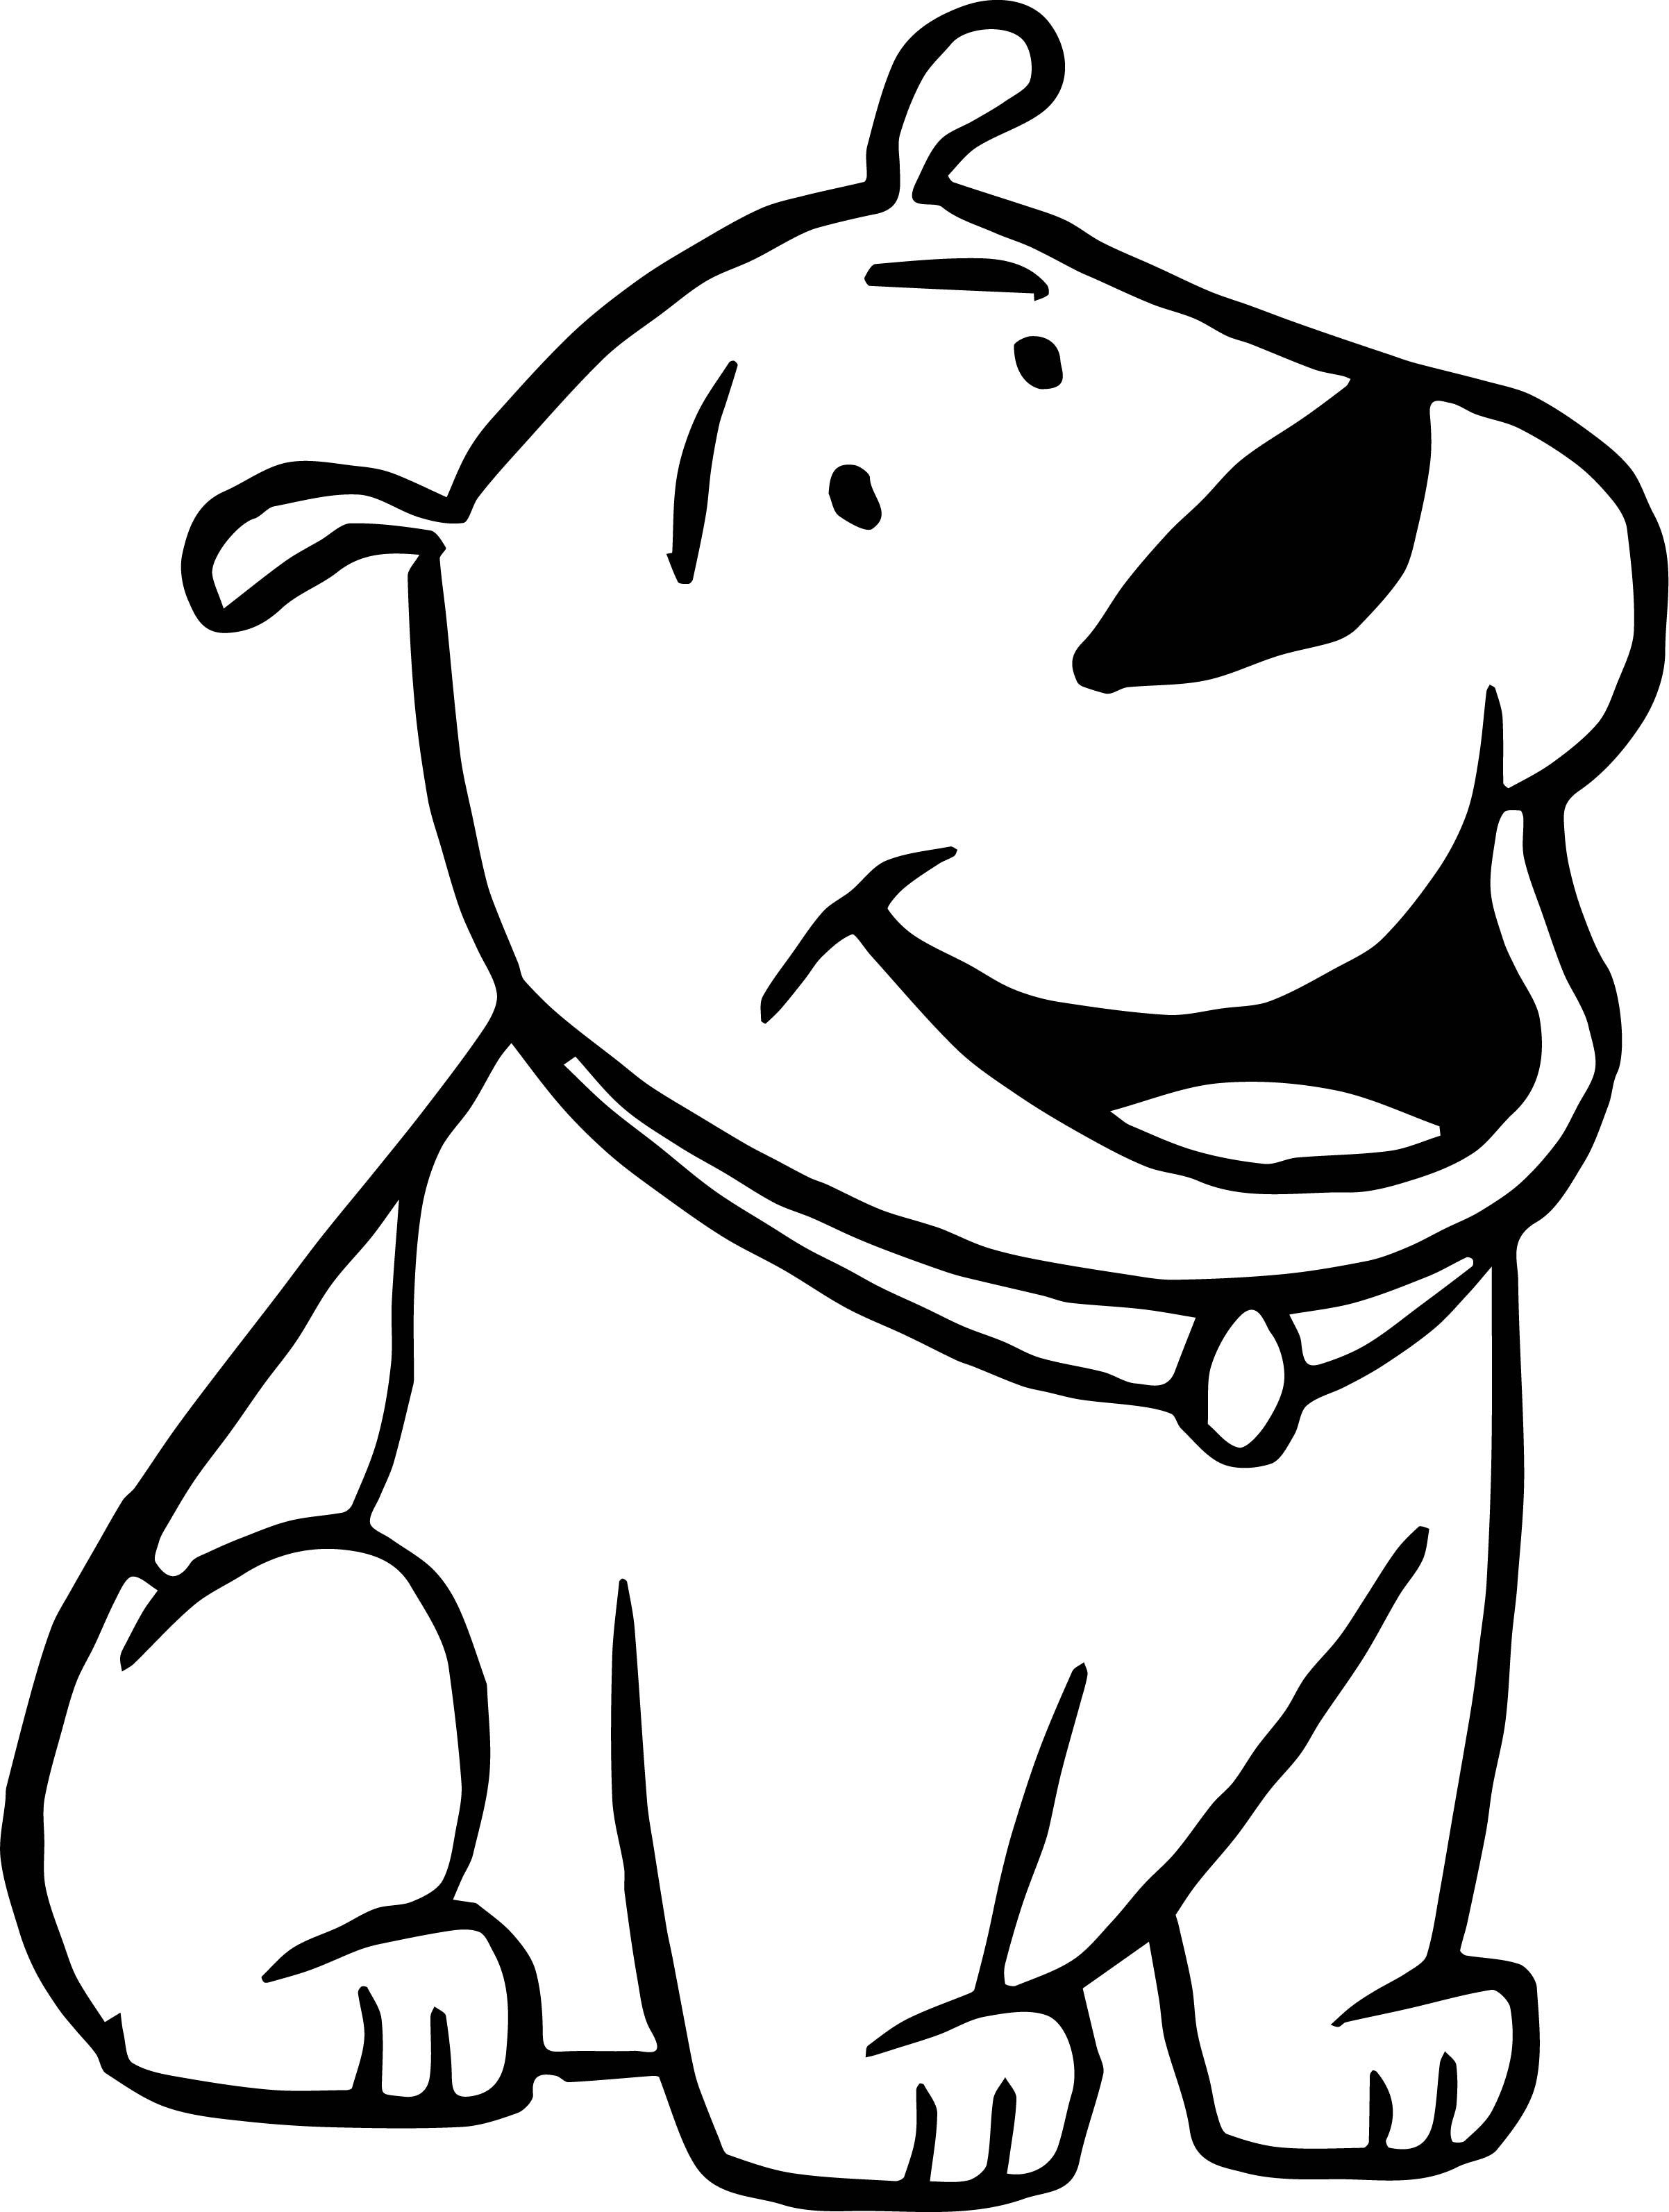 Clifford Coloring Pages Scholastic - Bltidm